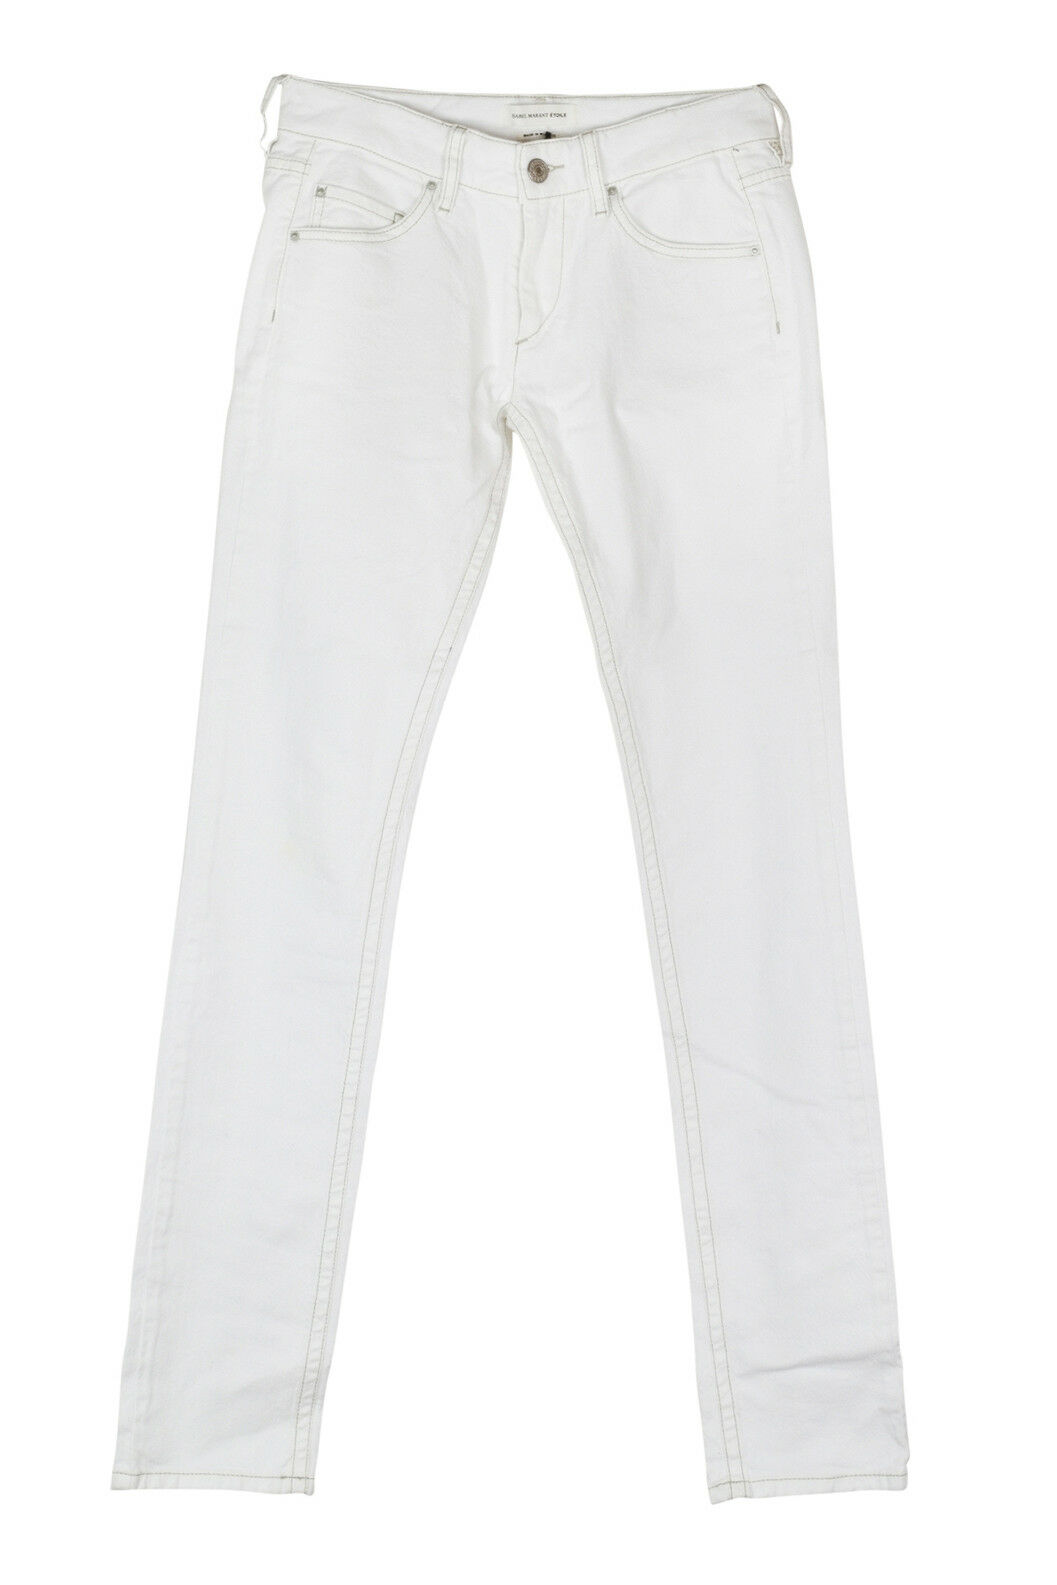 NEW Isabel Marant Etoile Trudy skinny jeans